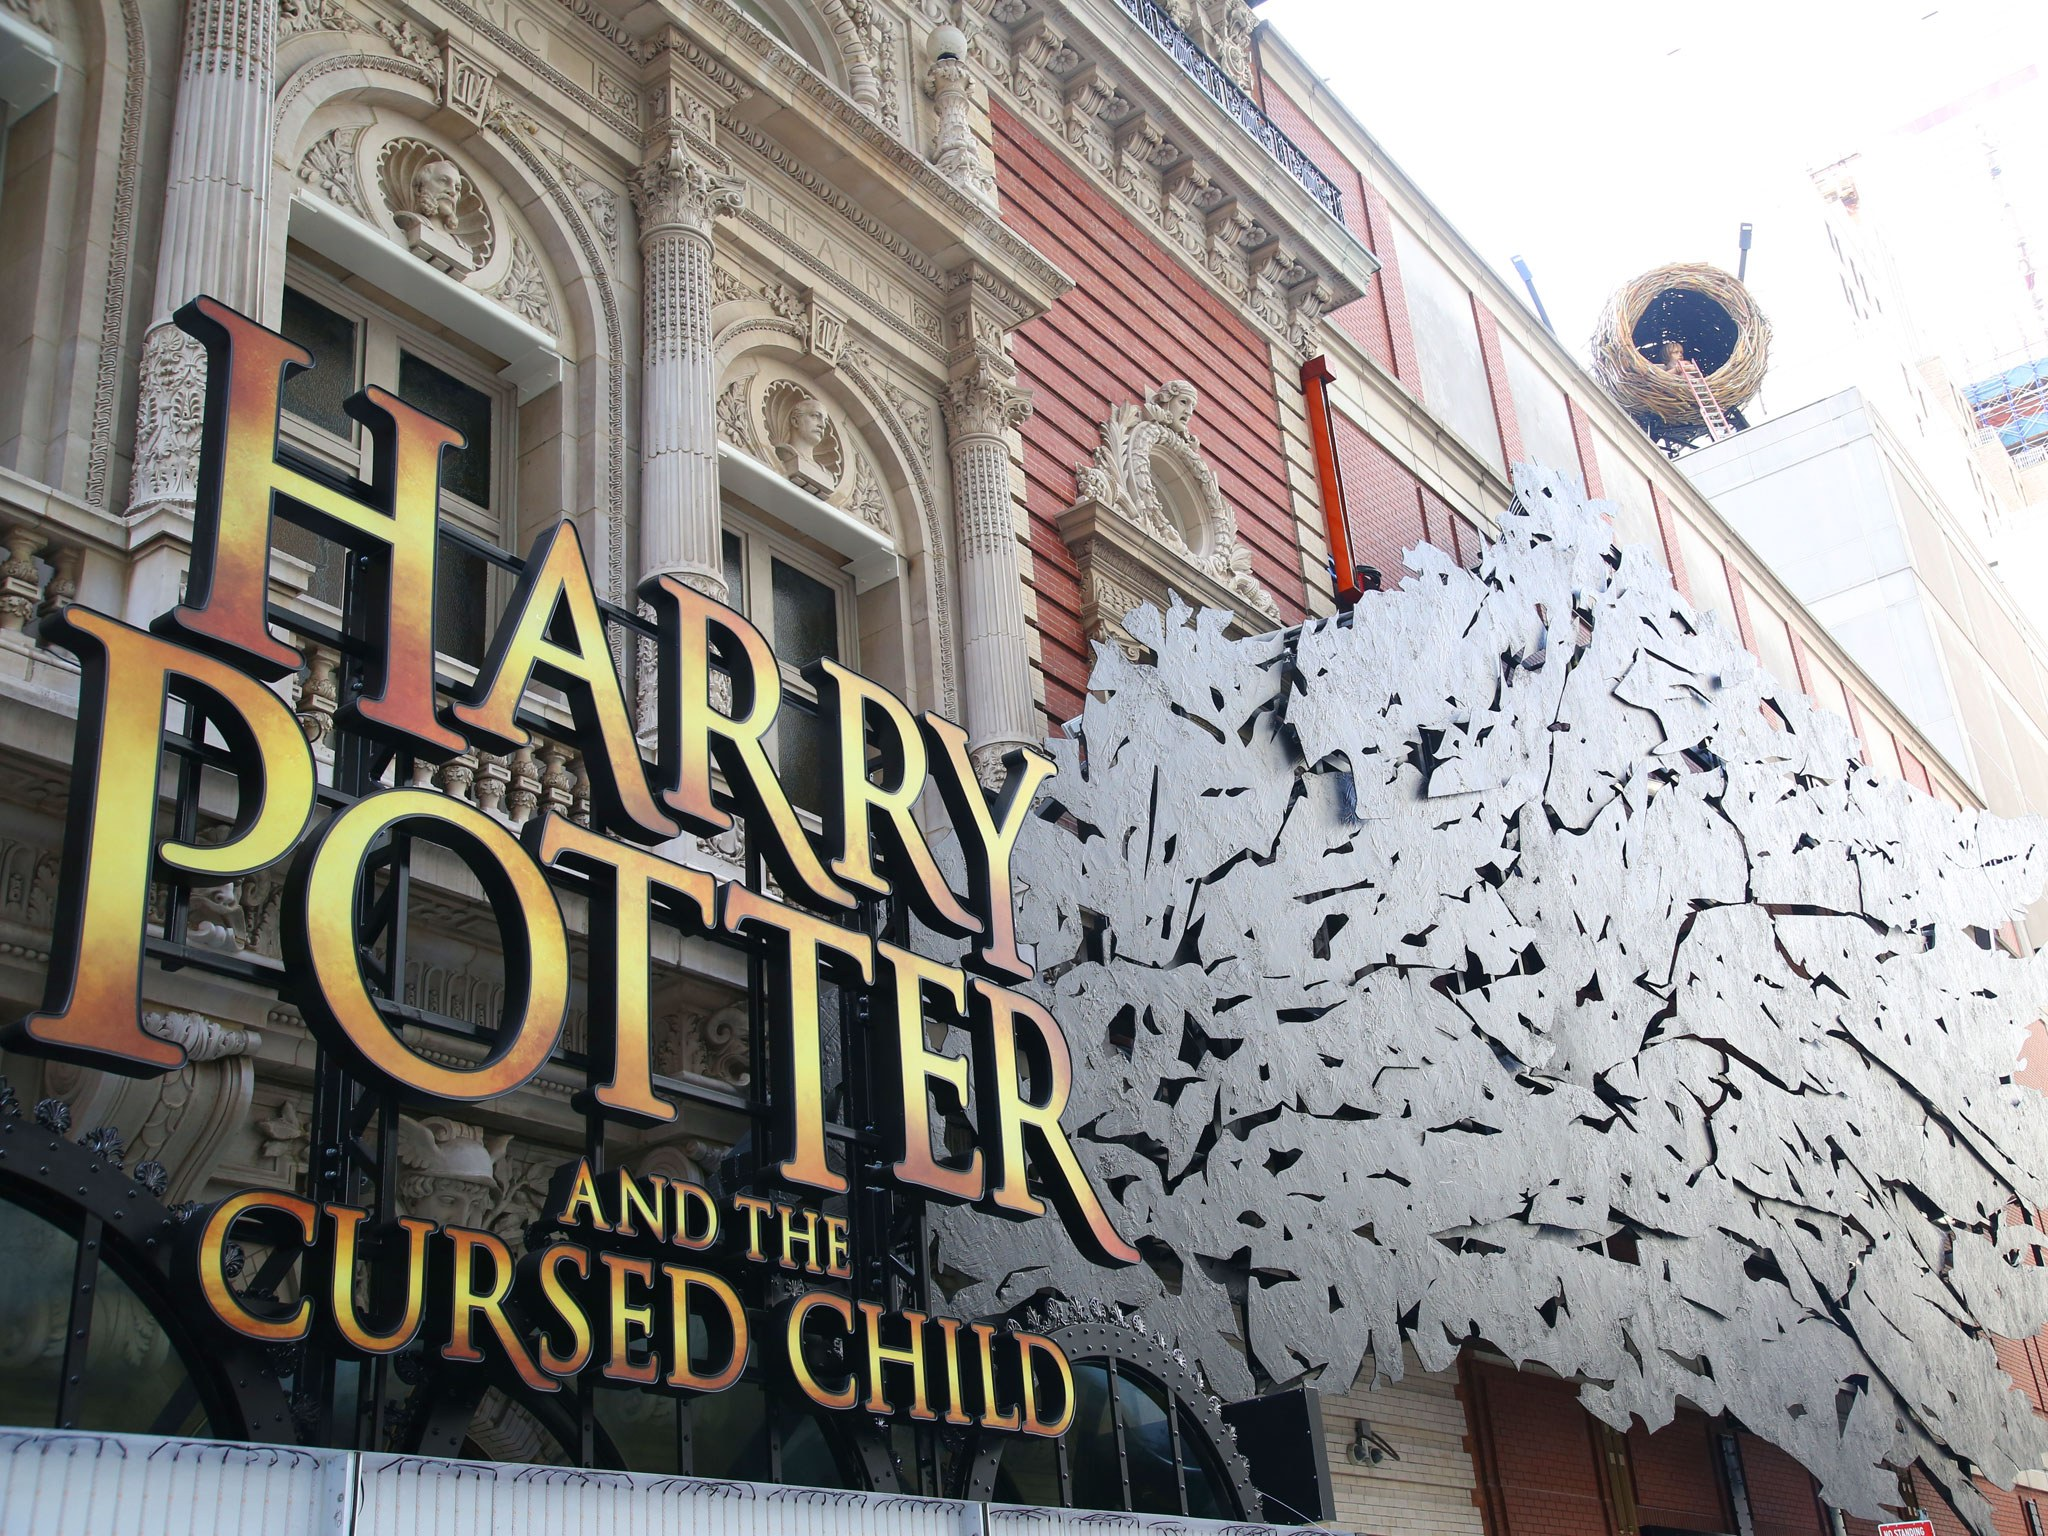 Harry Potter and the Cursed Child Broadway Theatre Marquee